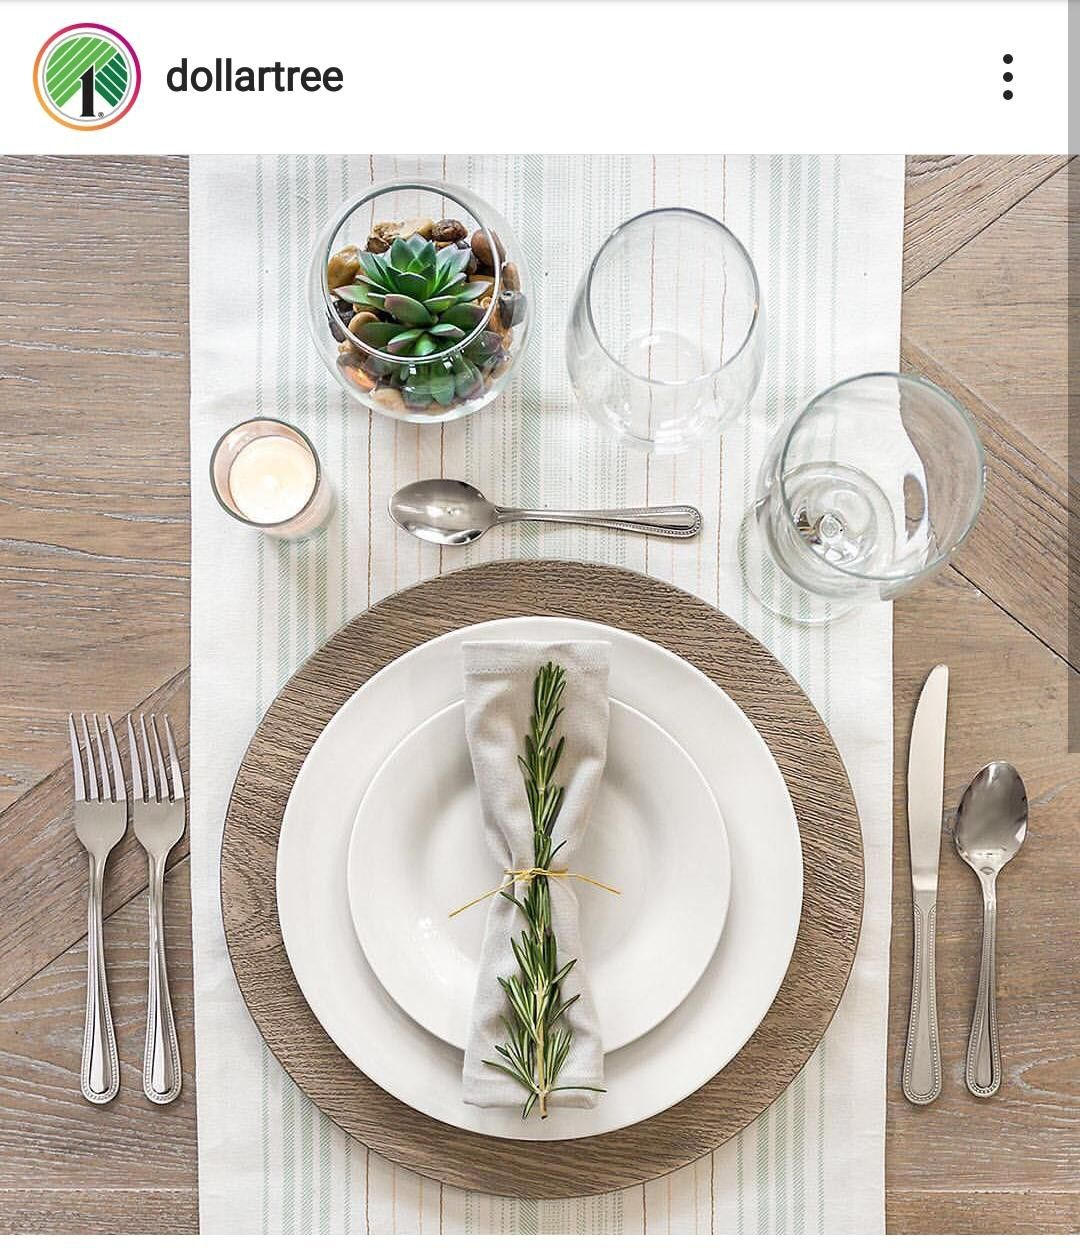 Faux Wood Chargers From Dollar Tree Wedding Decor In 2019